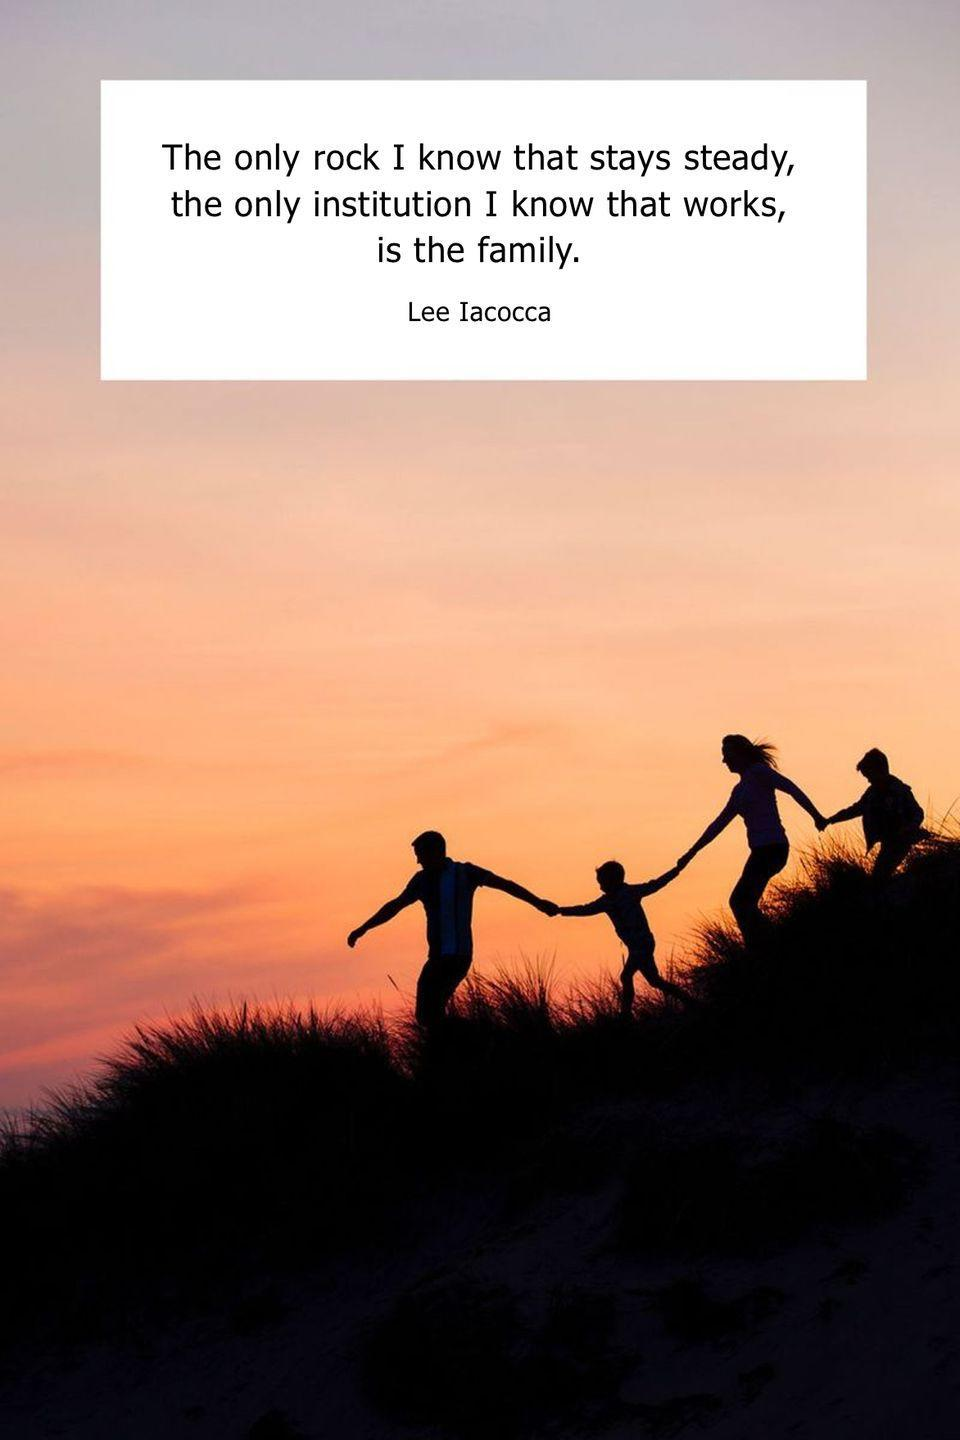 "<p>""The only rock I know that stays steady, the only institution I know that works, is the family.""</p>"